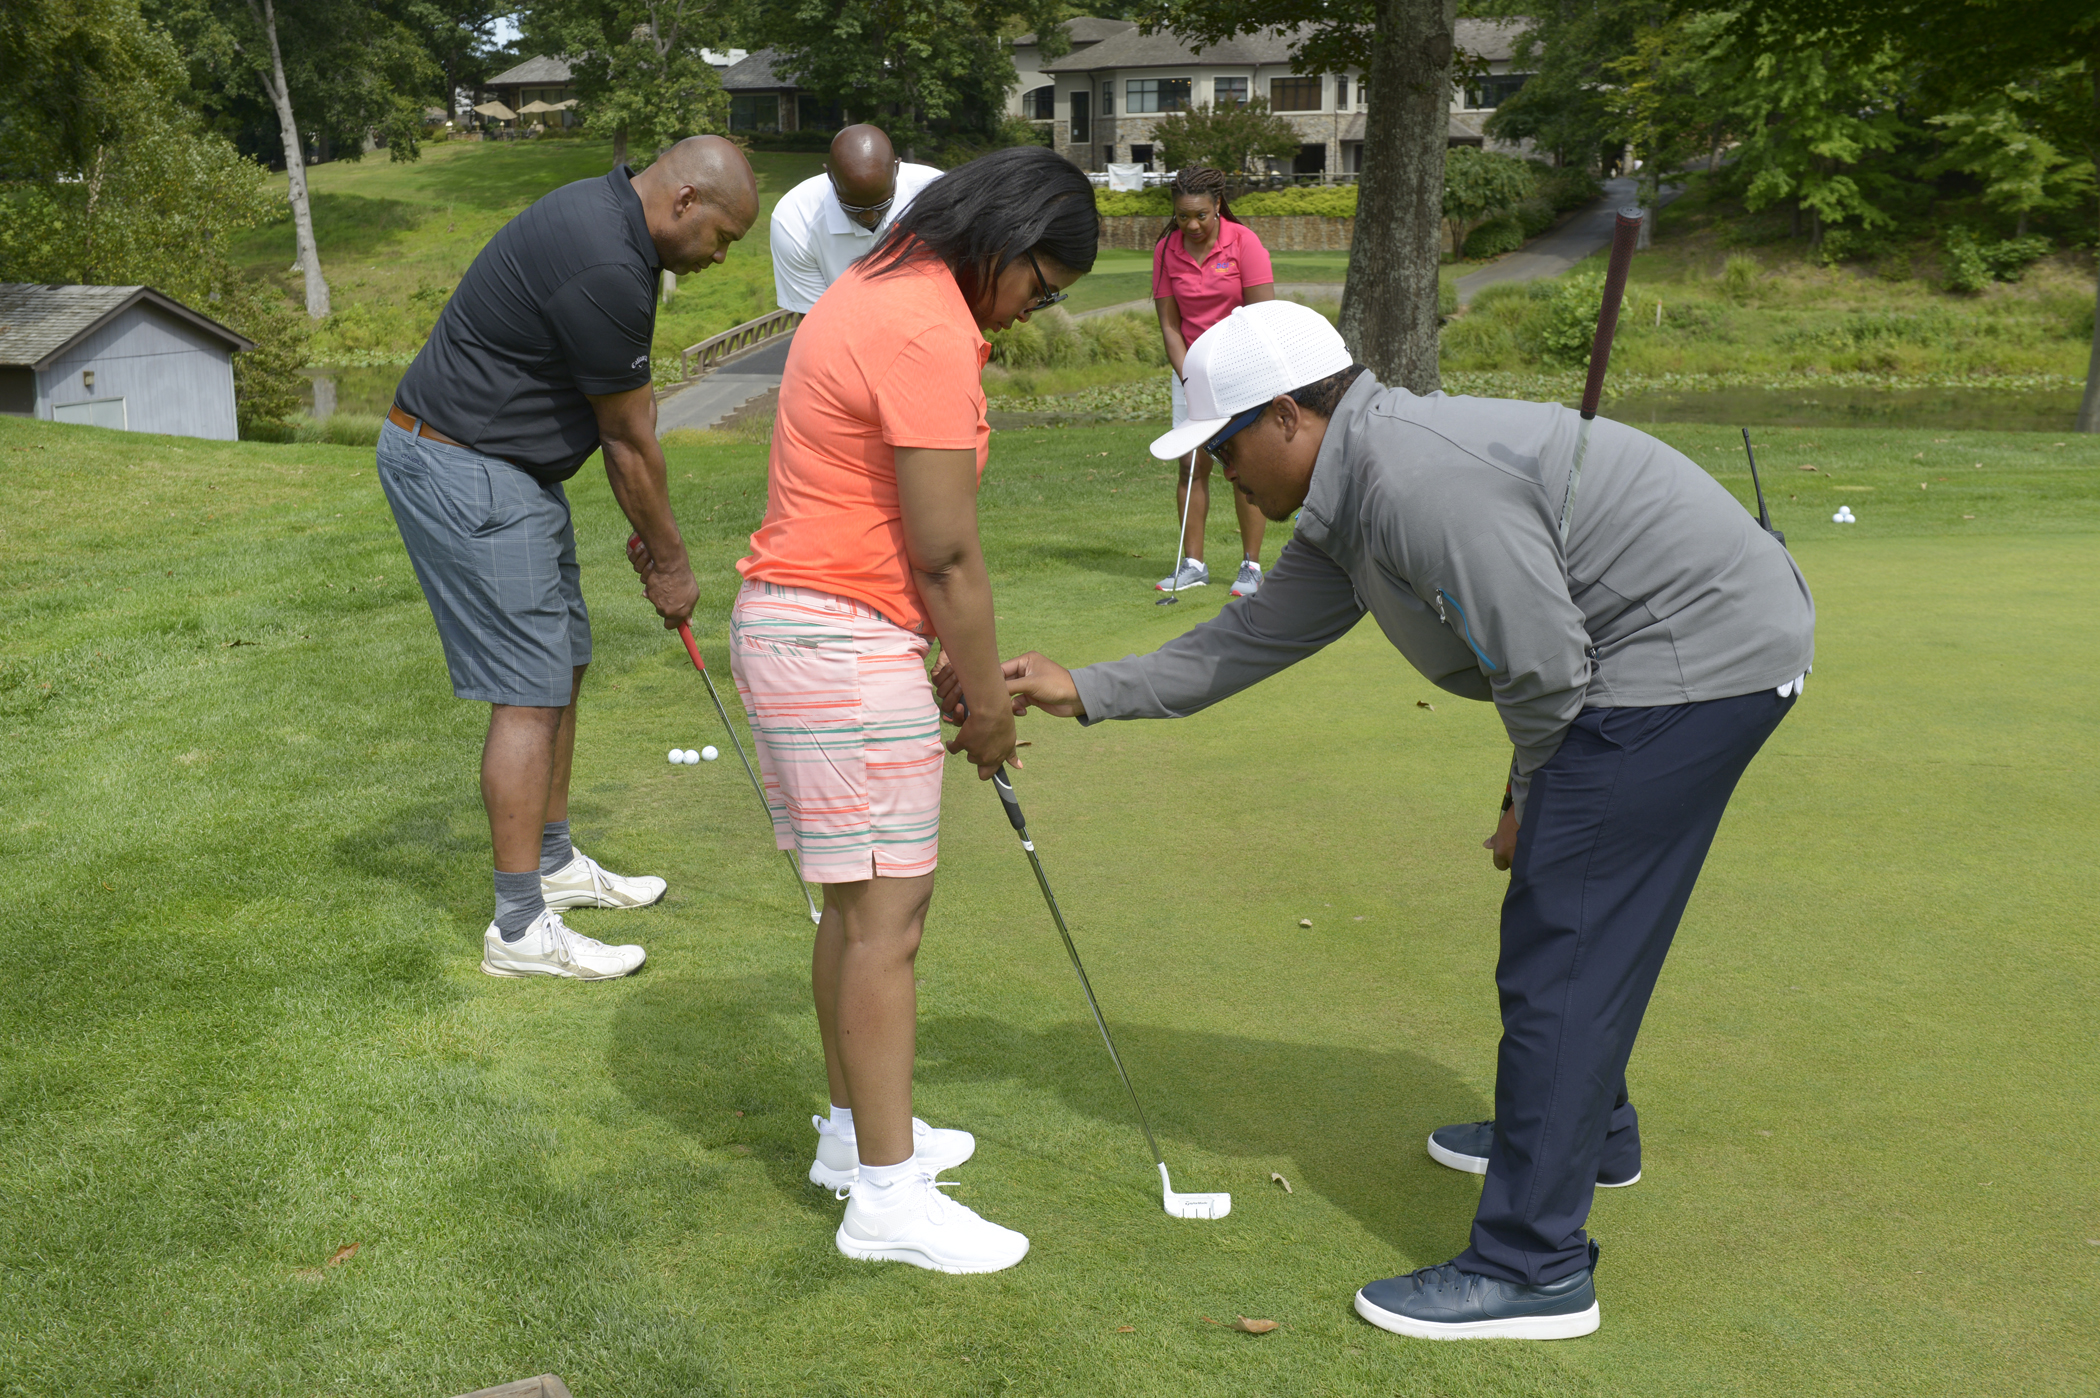 Golf Clinic Participants